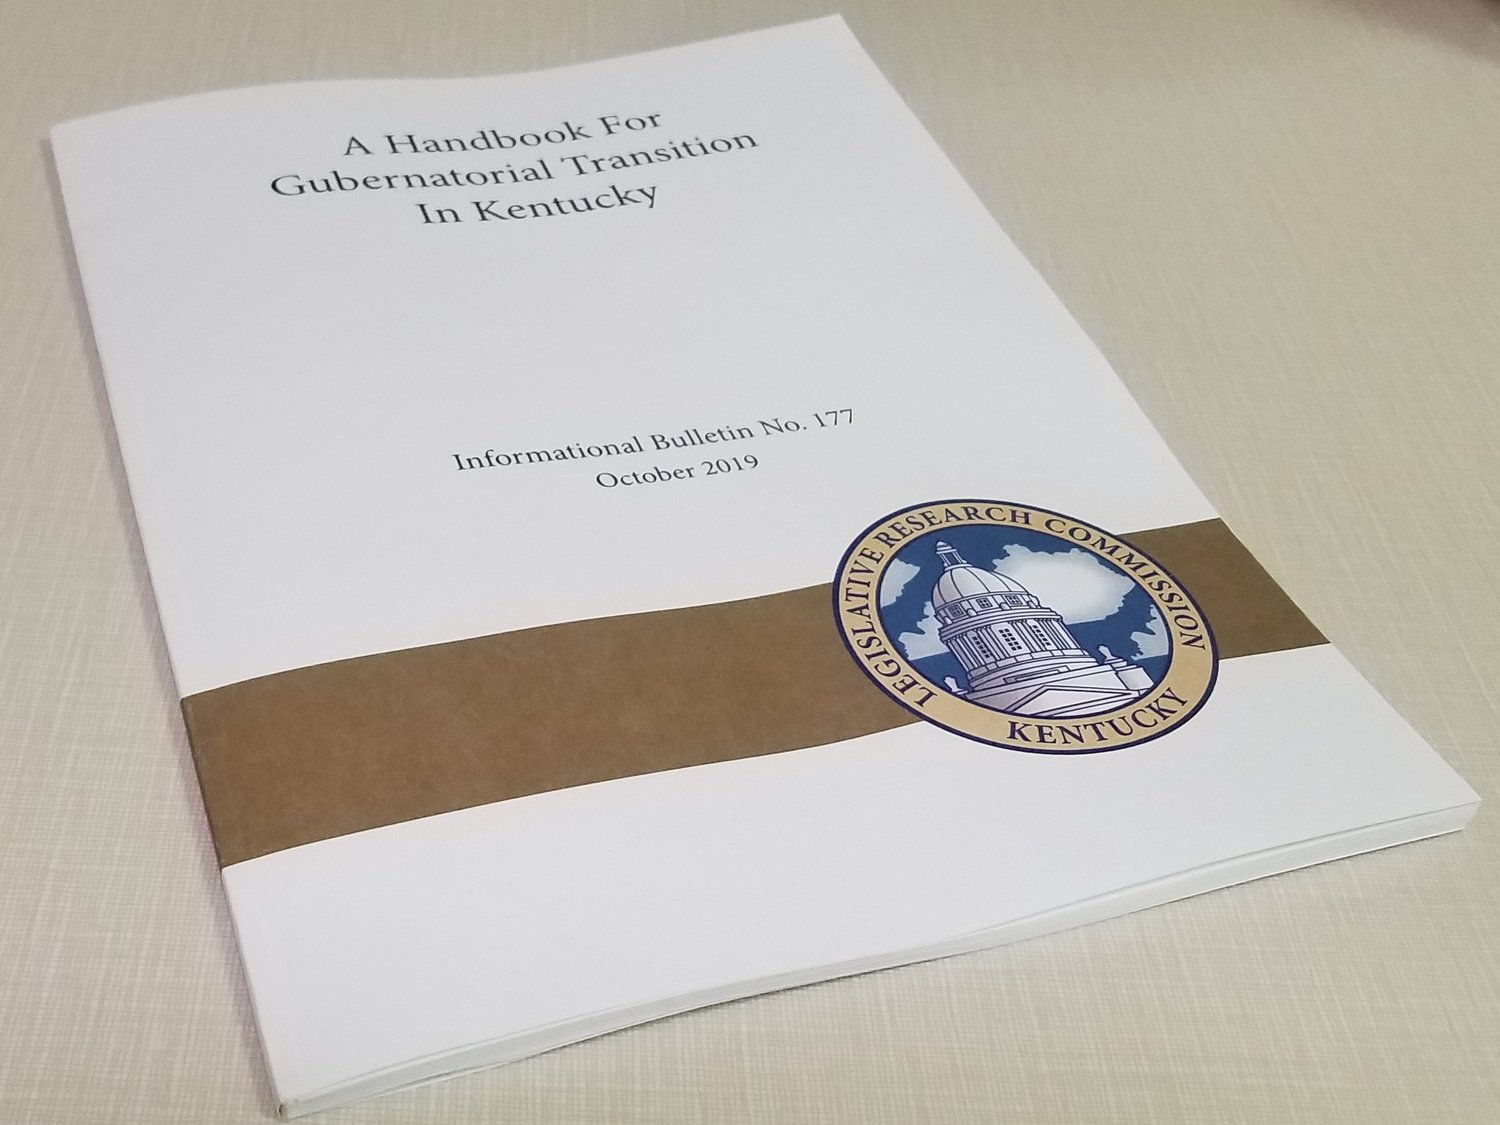 Governor-Elect Andy Beshear's transition team is looking at the LRC's transition handbook. (Kentucky Today/Tom Latek)